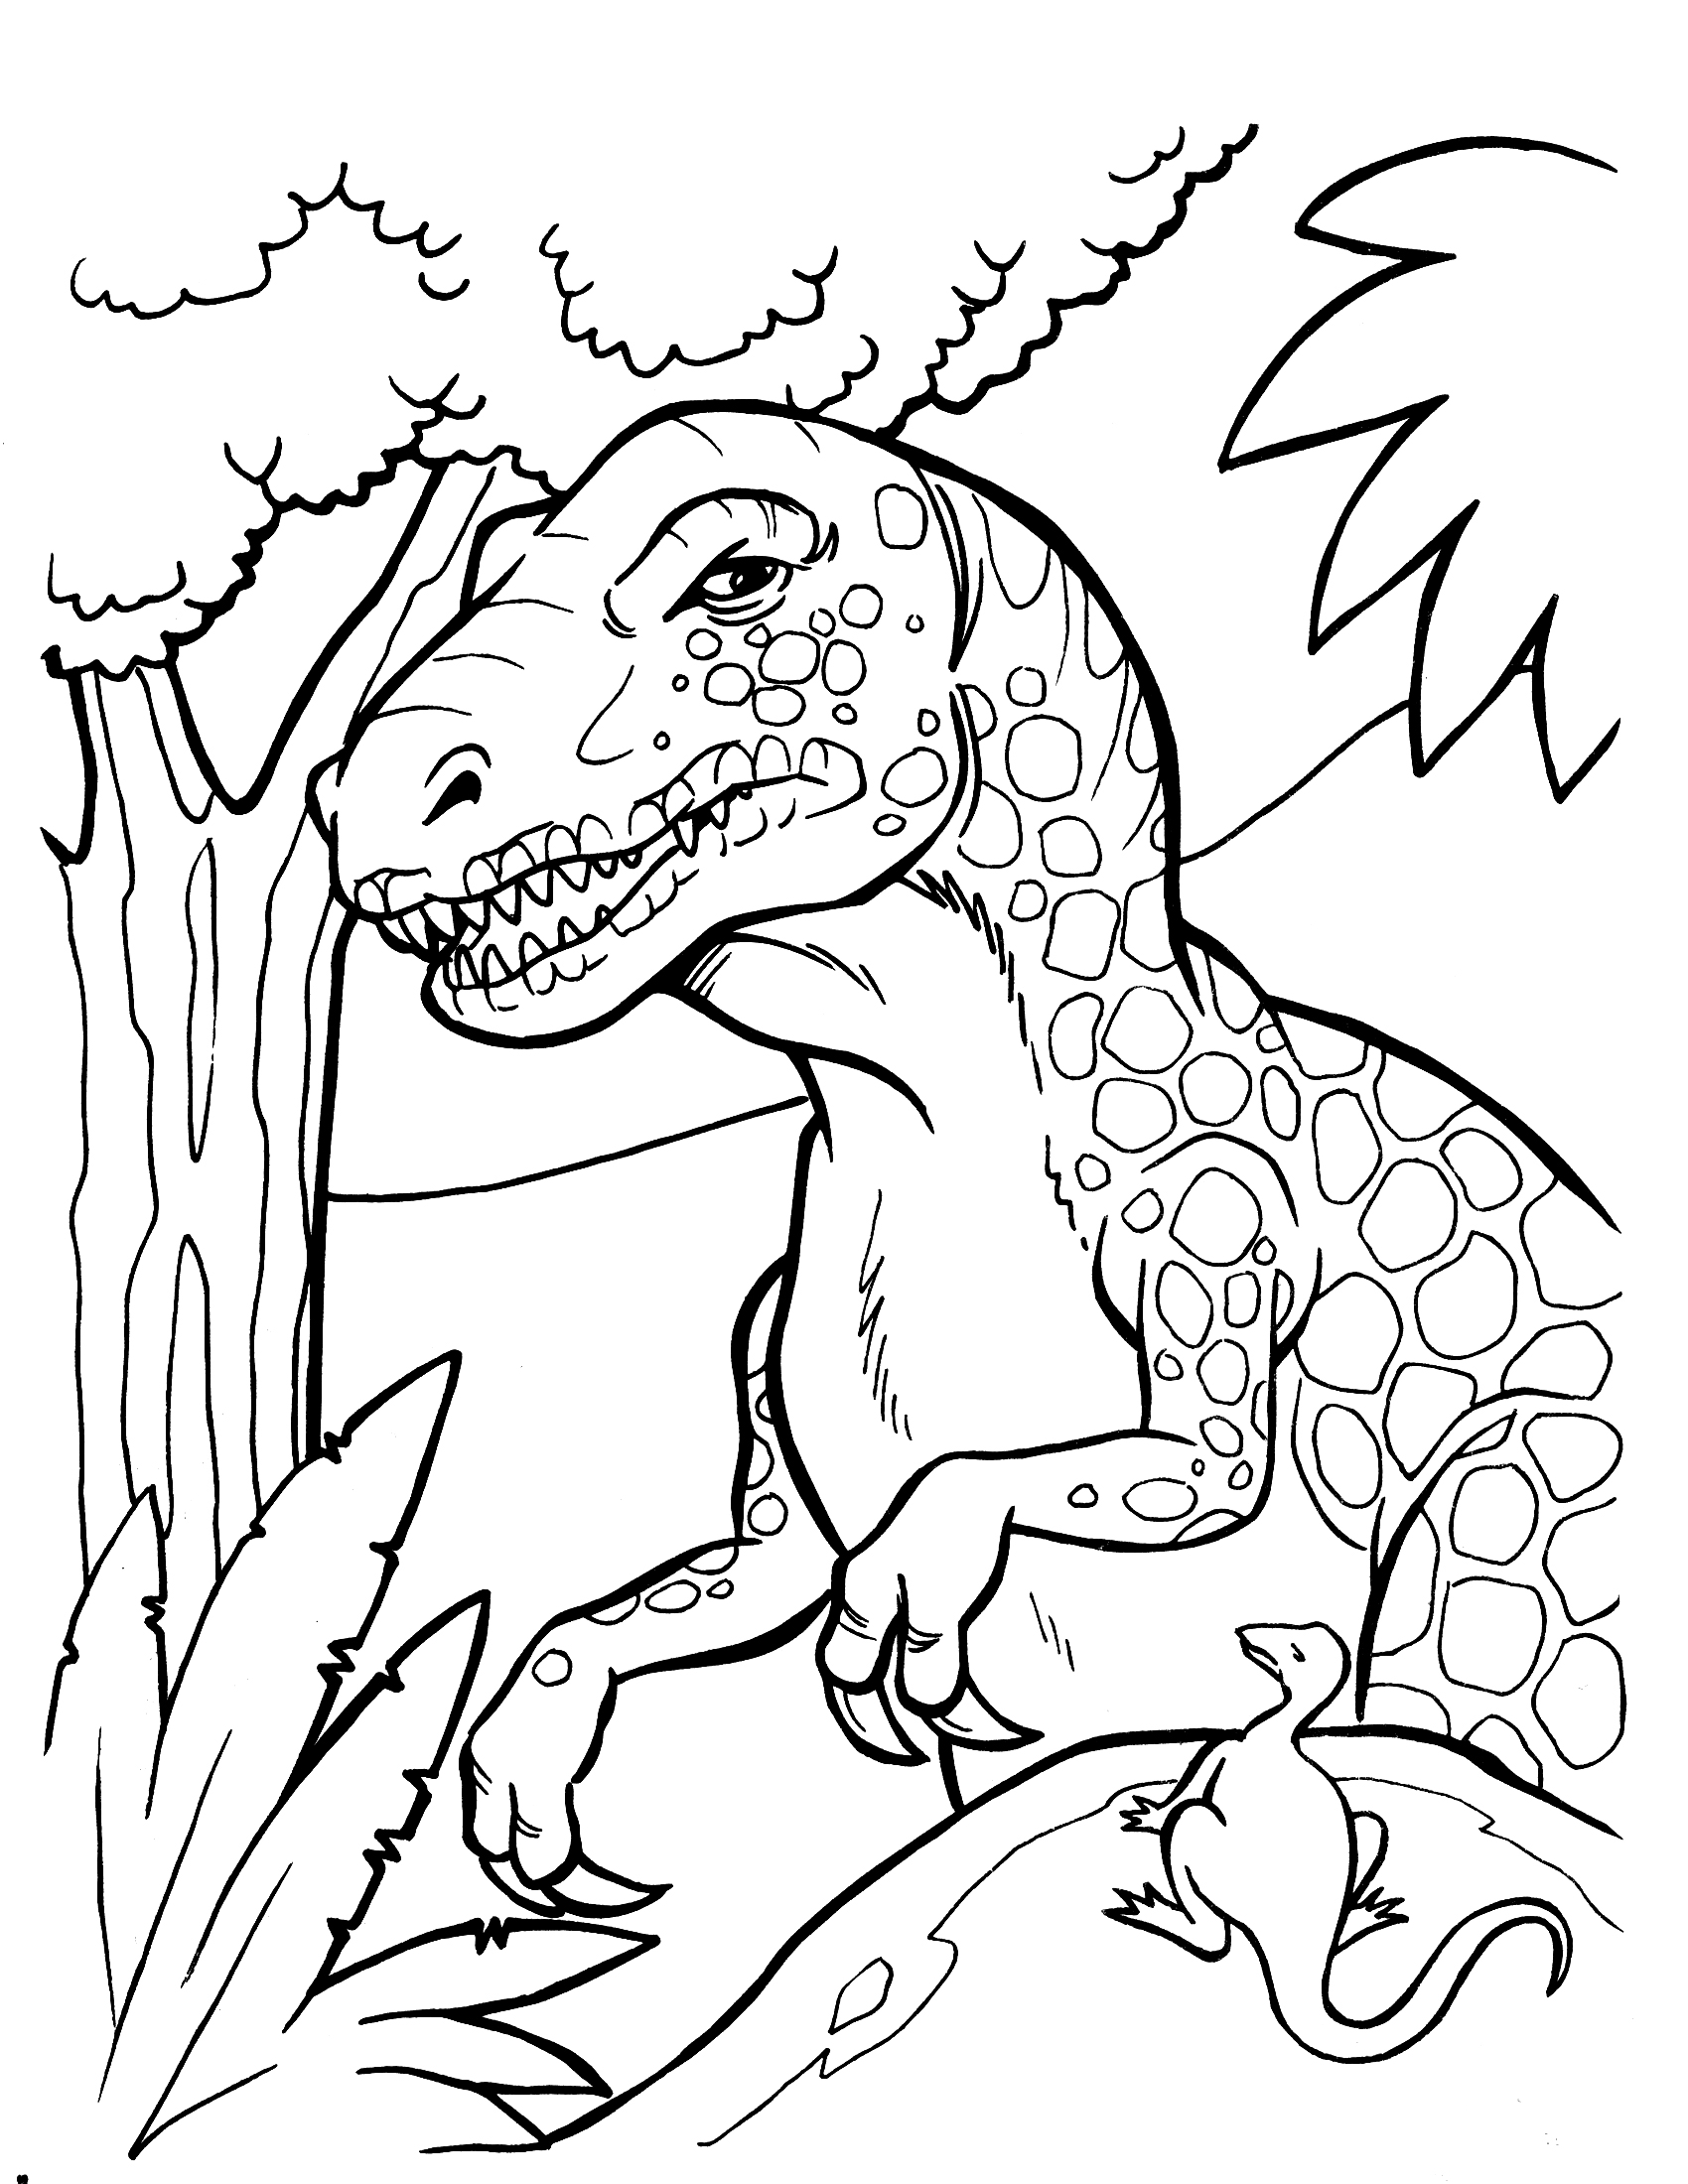 colouring dinosaur pictures free printable dinosaur coloring pages for kids colouring dinosaur pictures